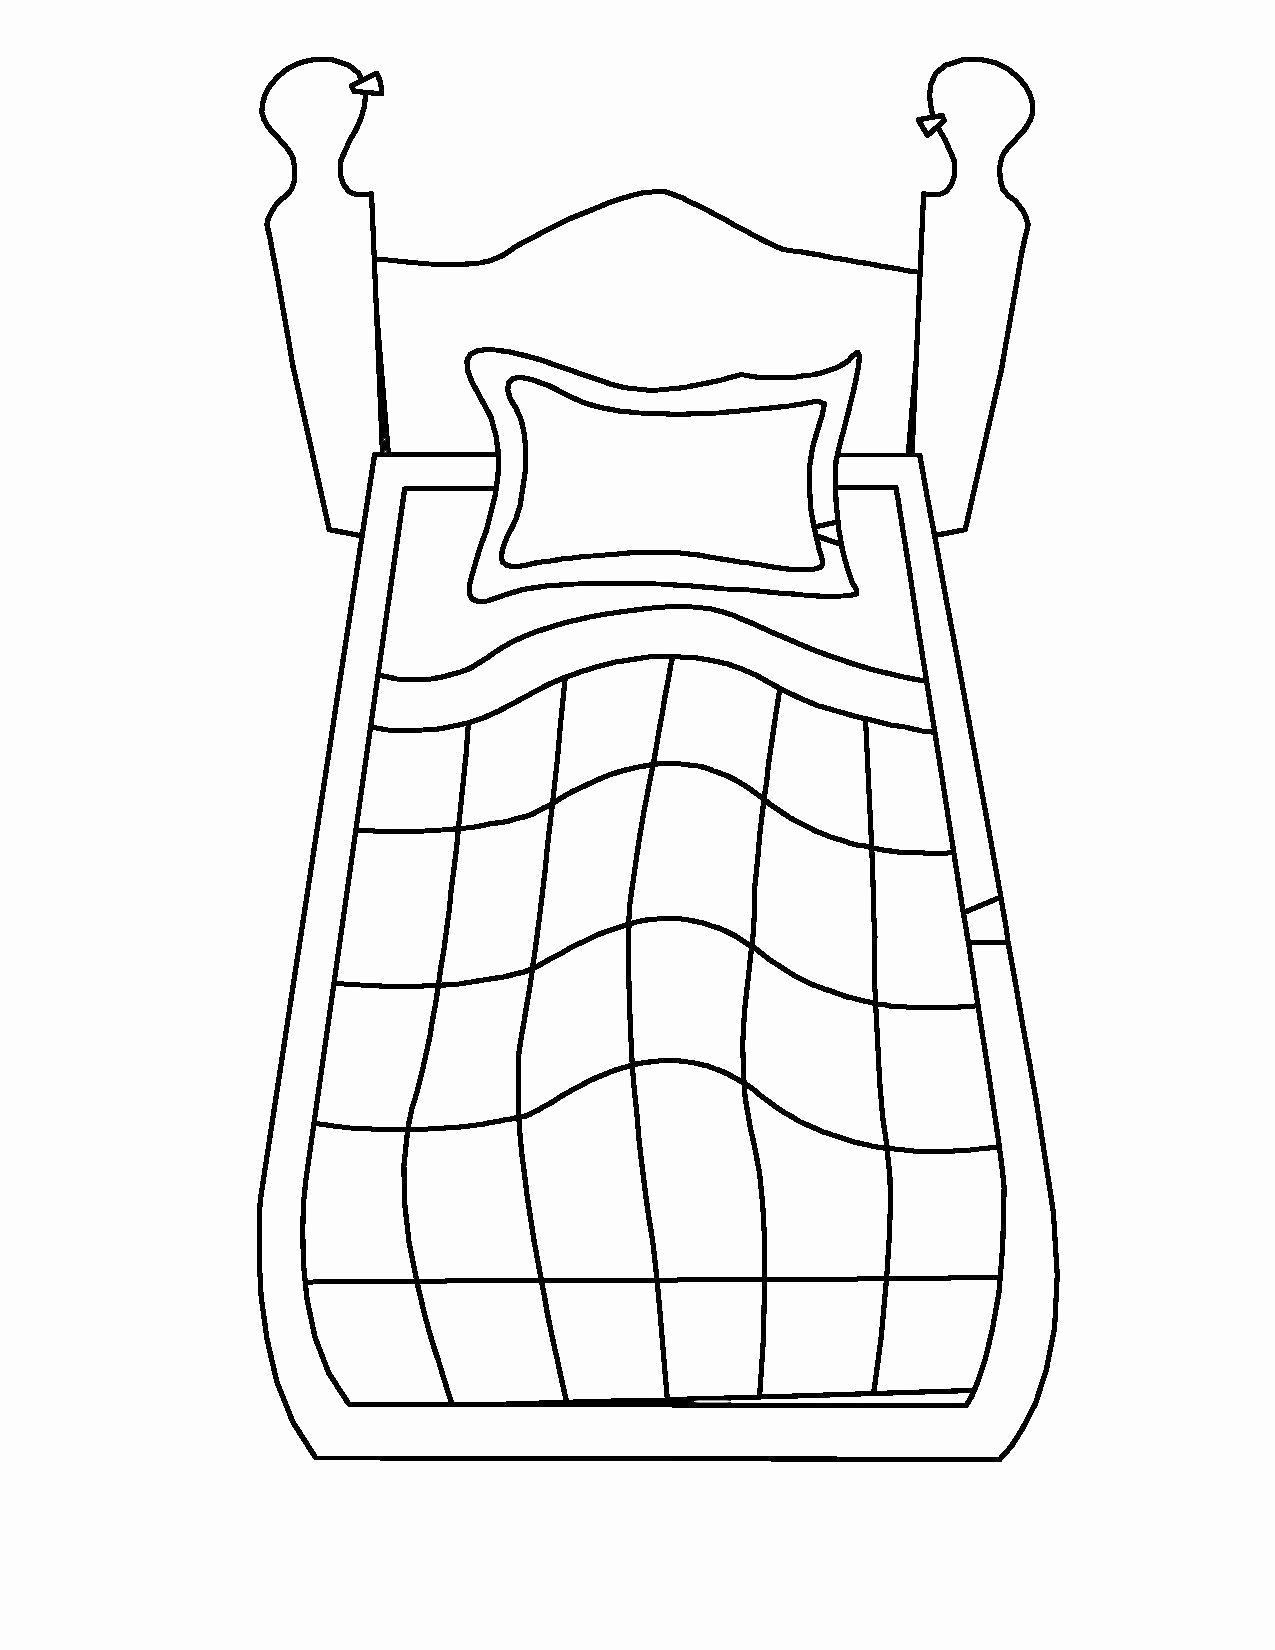 Free Printable Quilt Coloring Pages Lovely Amish Coloring Pages At Getcolorings Pattern Coloring Pages Coloring Pages To Print Underground Railroad Quilts